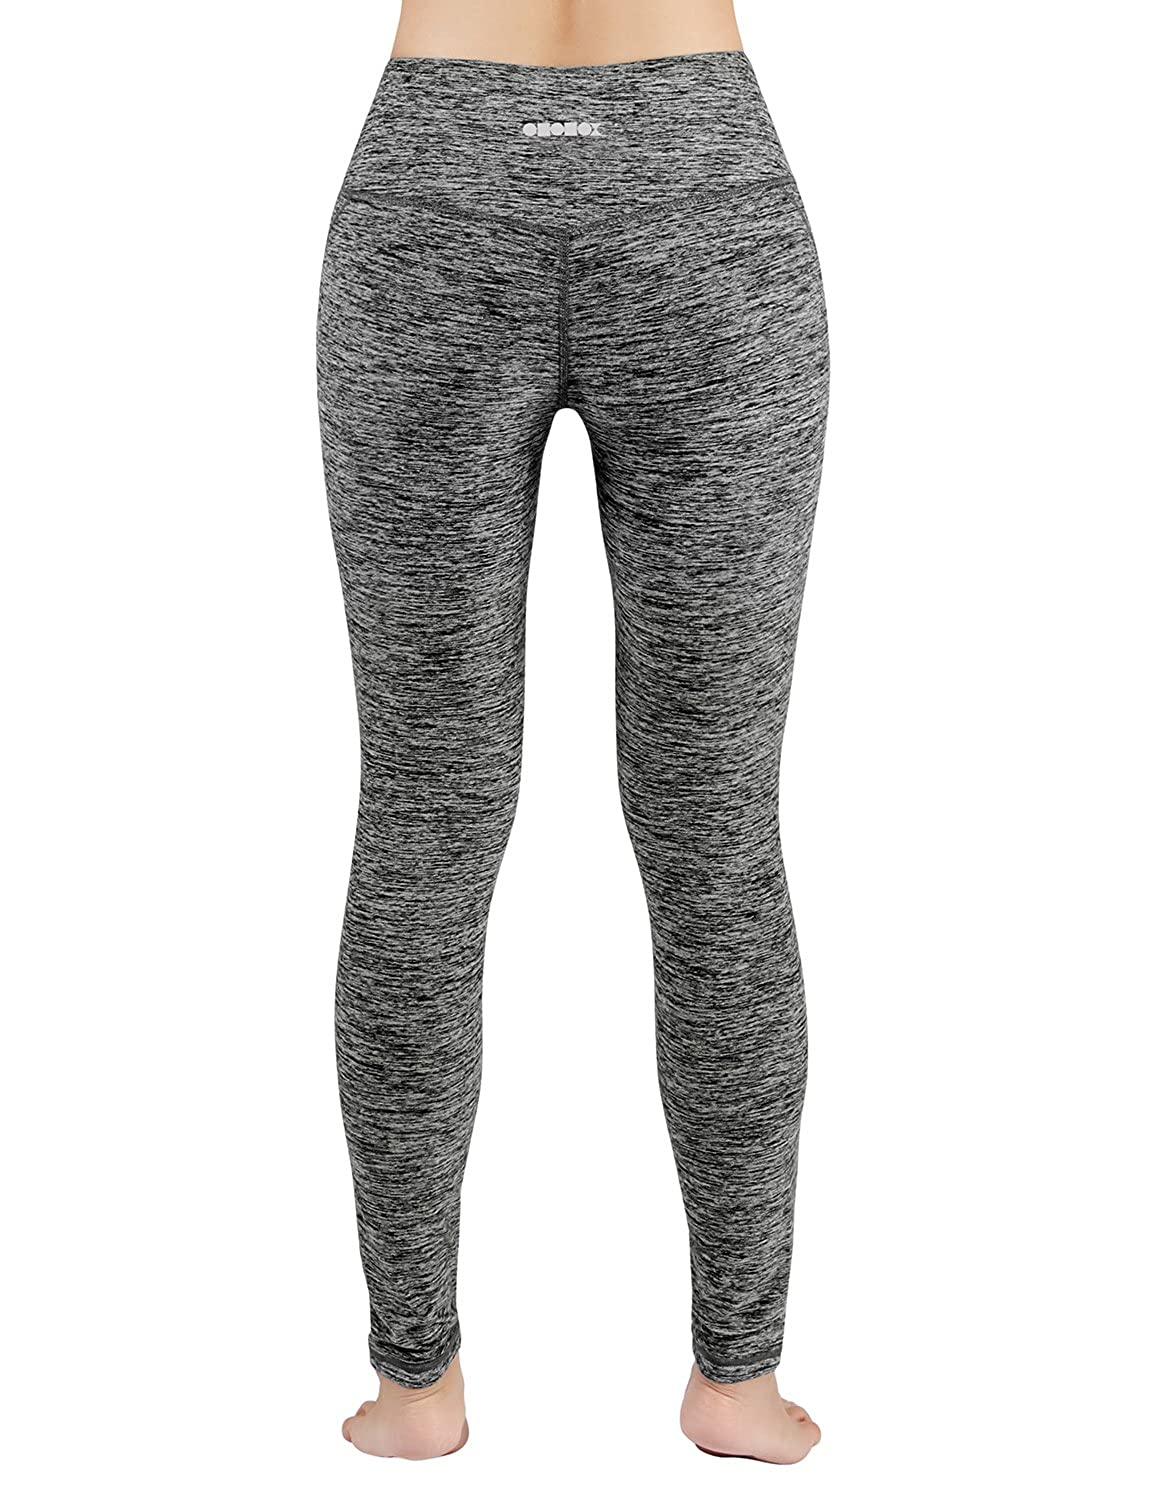 d590f70841f19 ODODOS Women's Yoga Pants Tummy Control Workout Running Non See-Through  Fabric Yoga Leggings with Hidden Pocket - Black -: Amazon.co.uk: Clothing